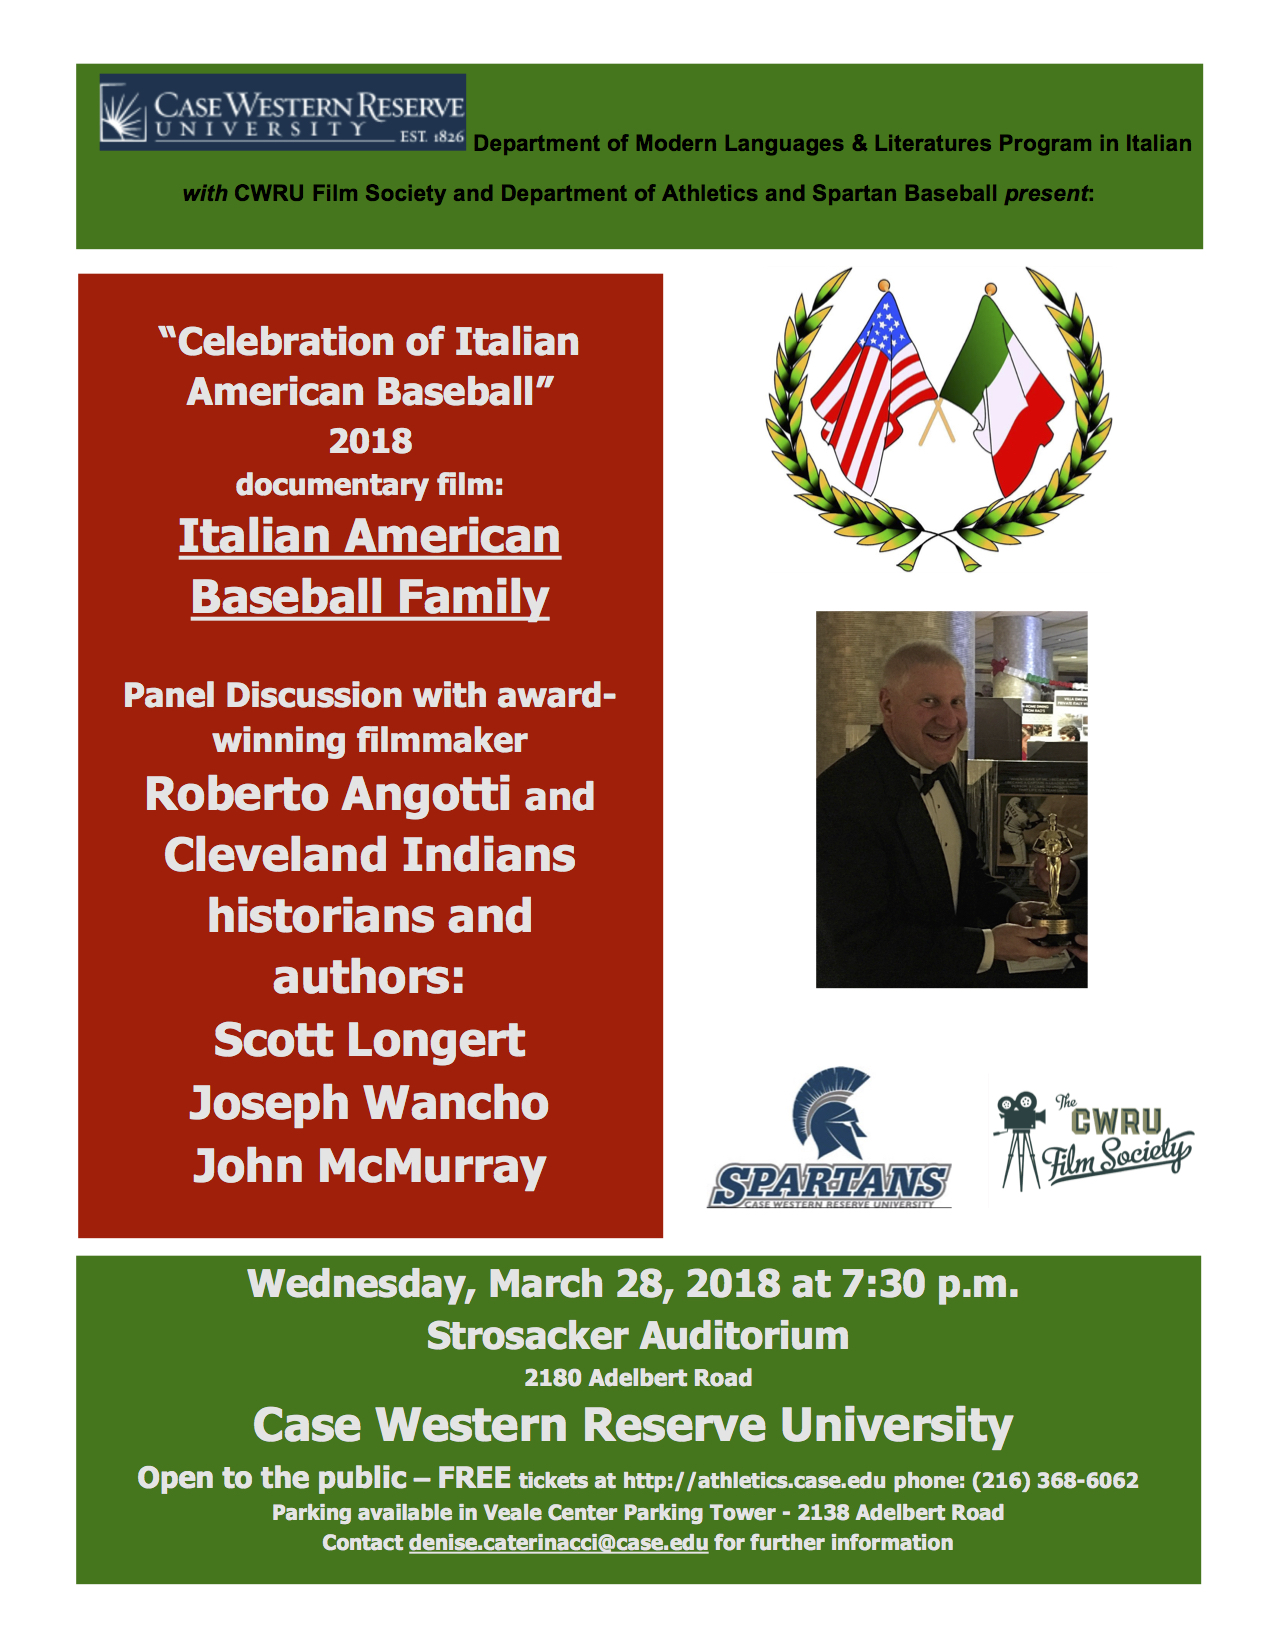 ITALIAN AMERICAN BASEBALL FAMILY Flyer Mar '18